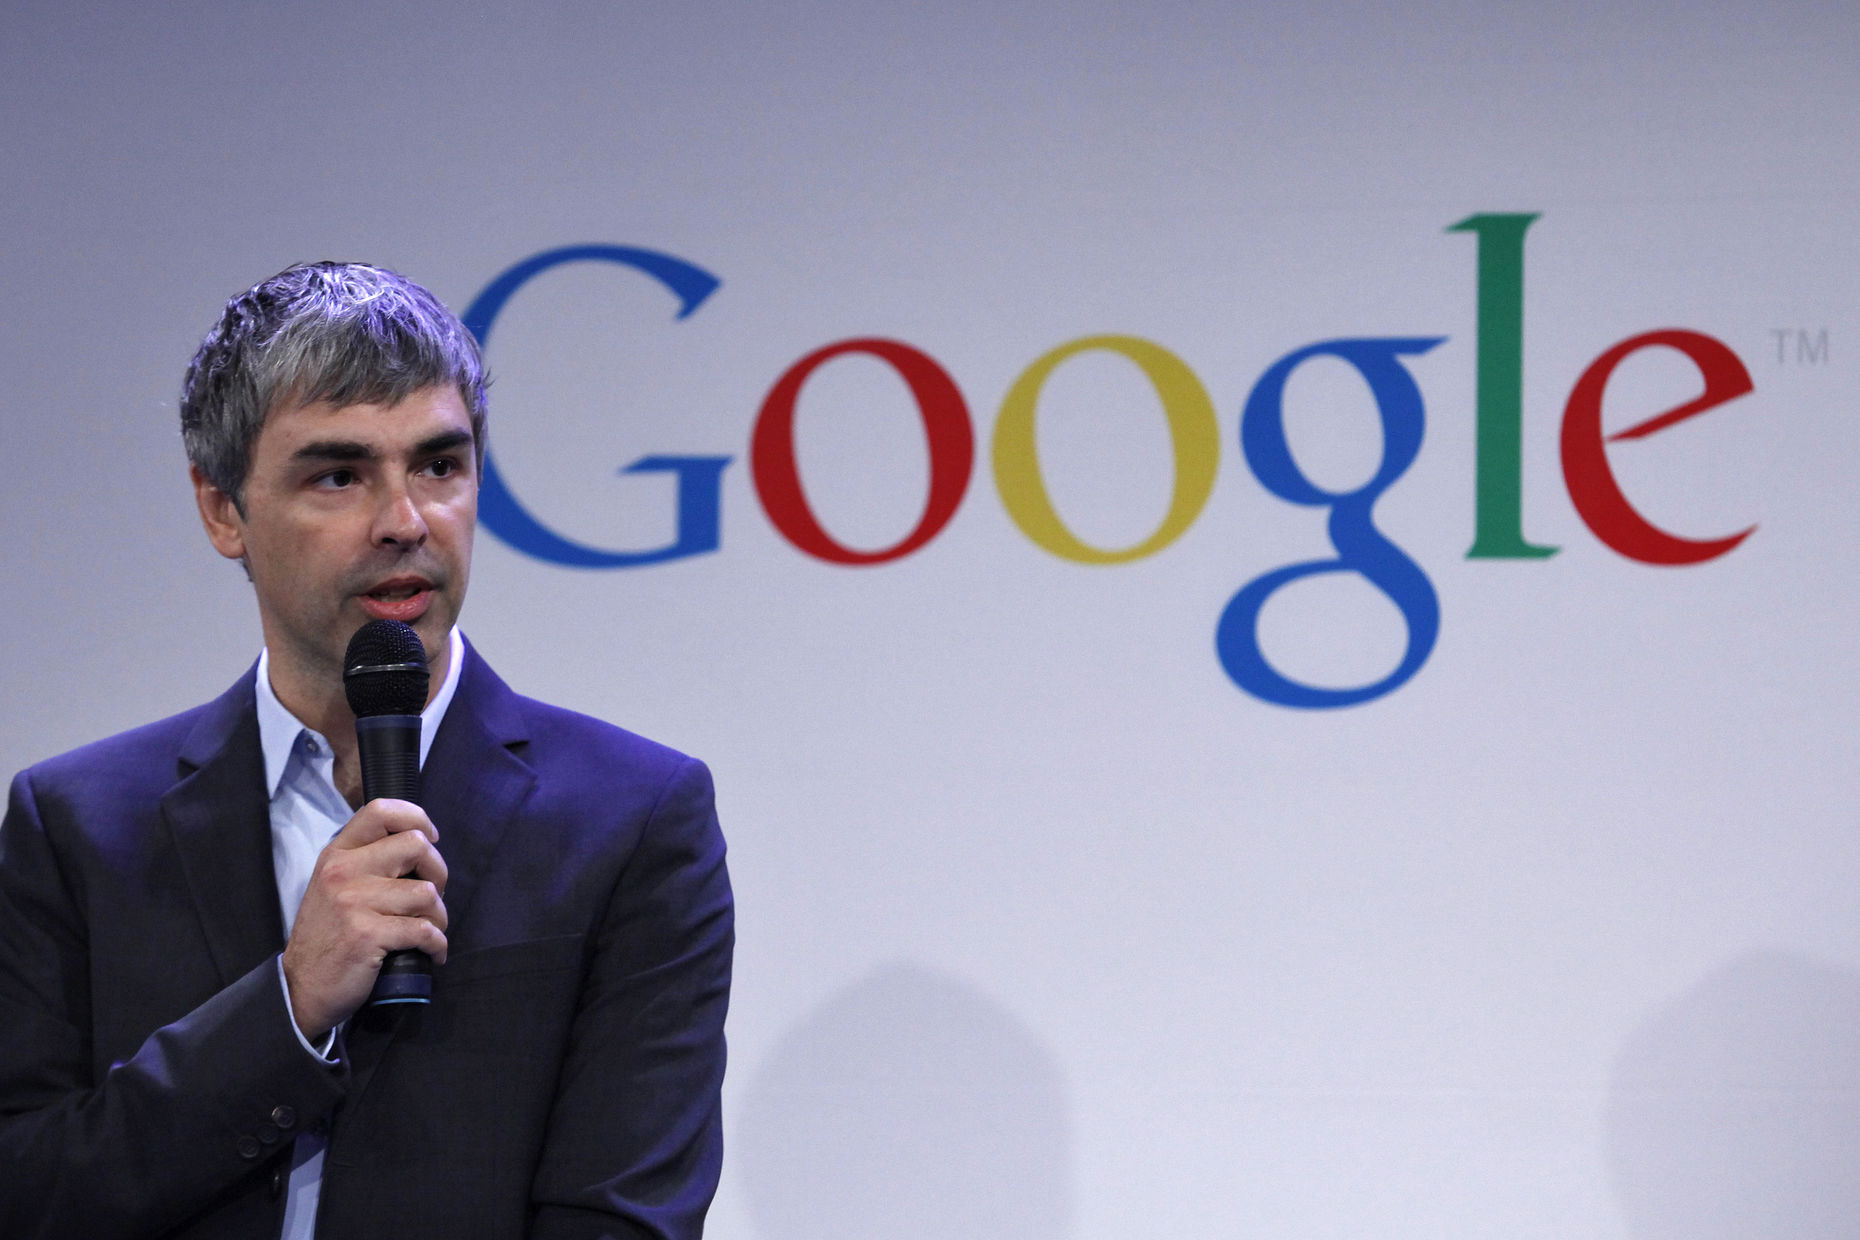 Google CEO Larry Page. Credit: Reuters